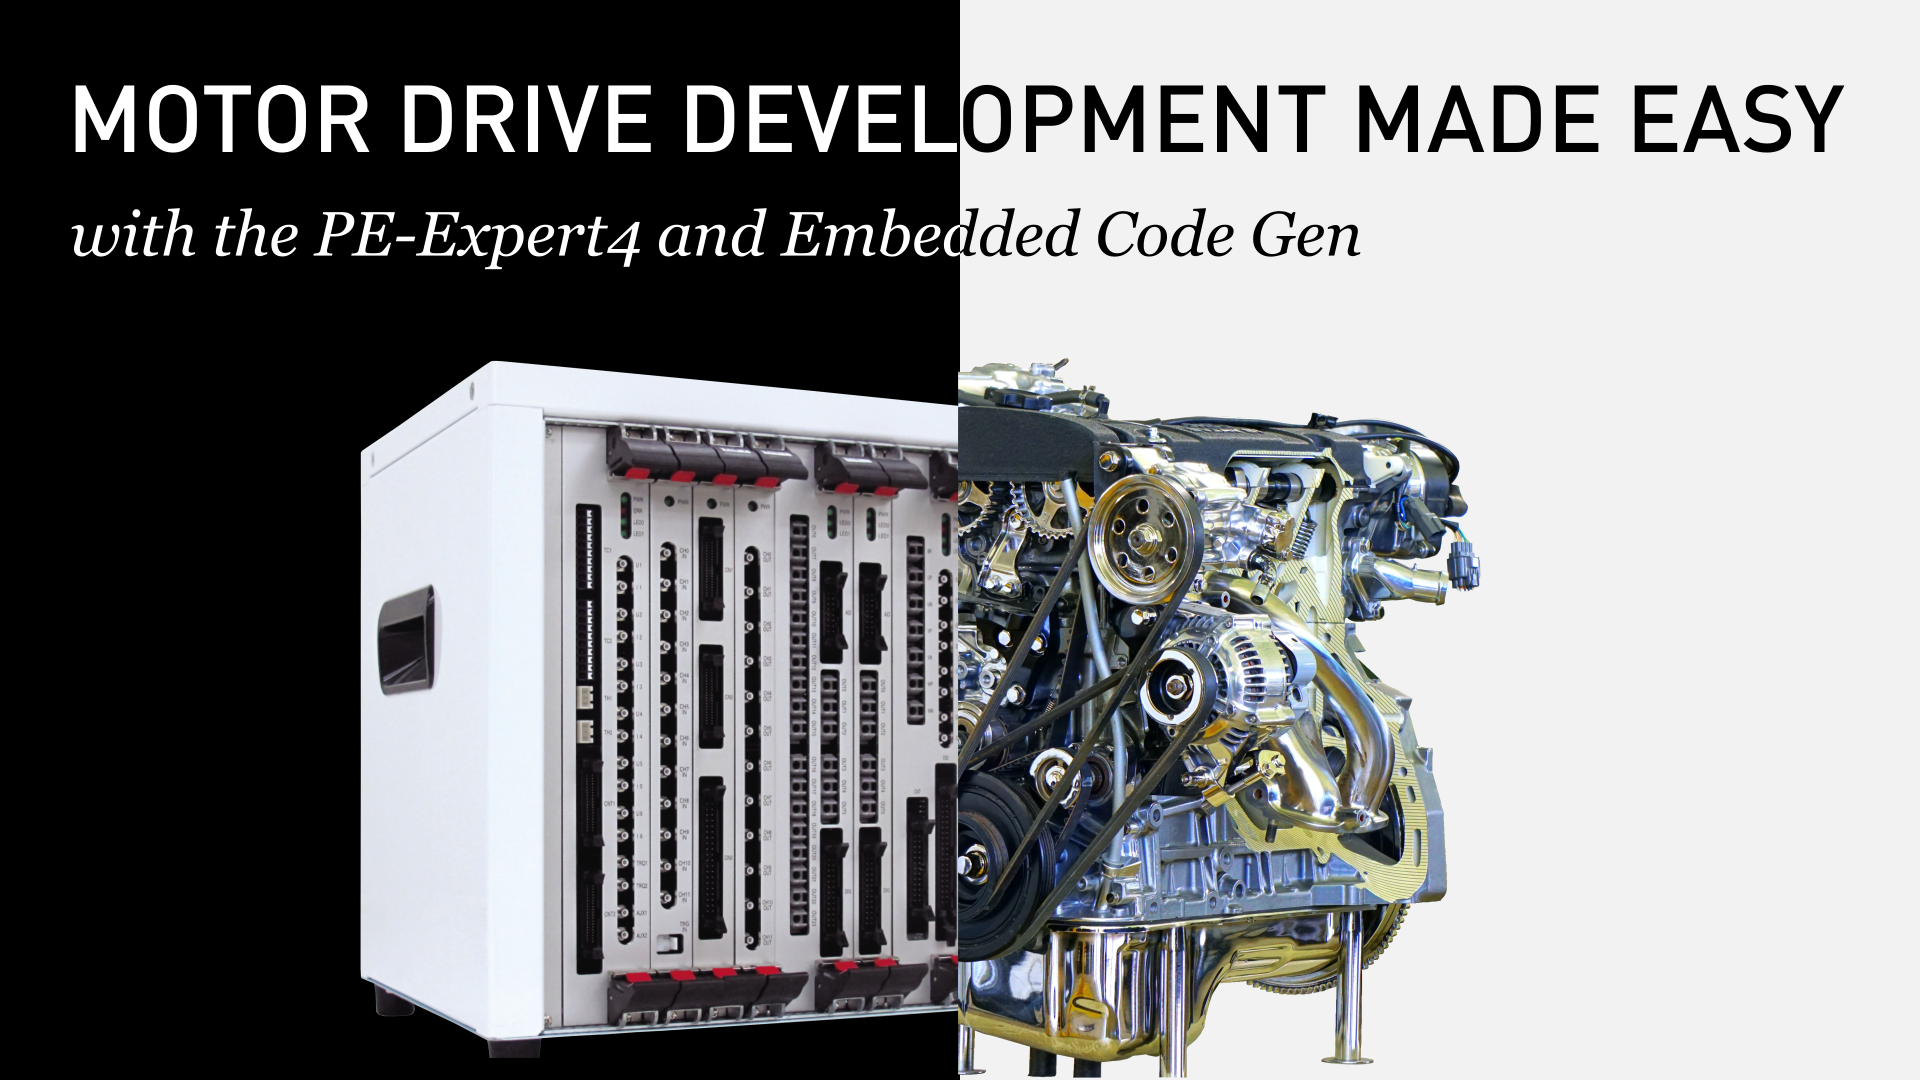 Motor Drive Development Made Easy with the PE-Expert4 and Embedded Code Gen